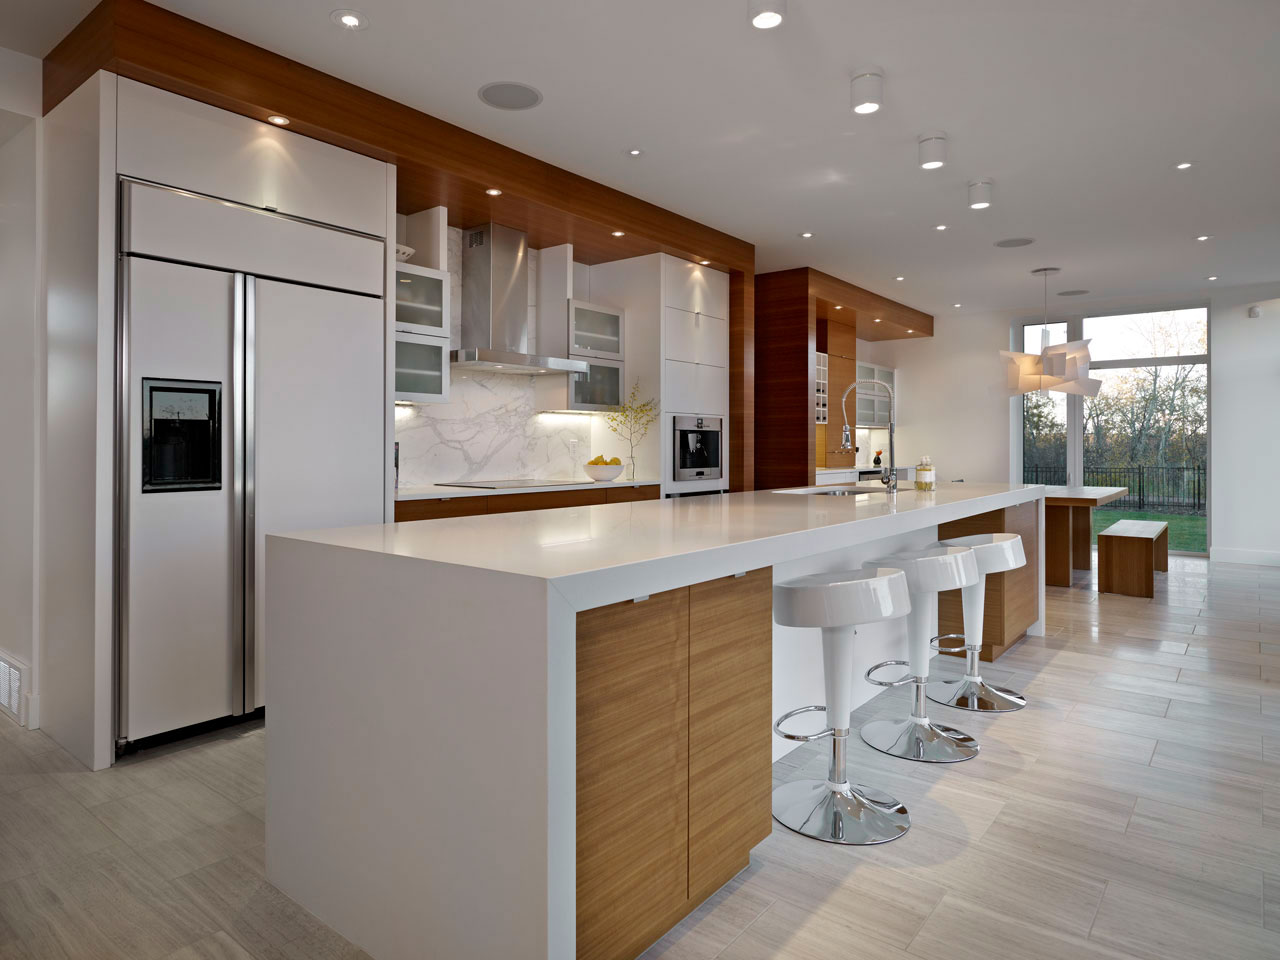 Kitchen, Breakfast Bar, Contemporary Home in Edmonton, Canada